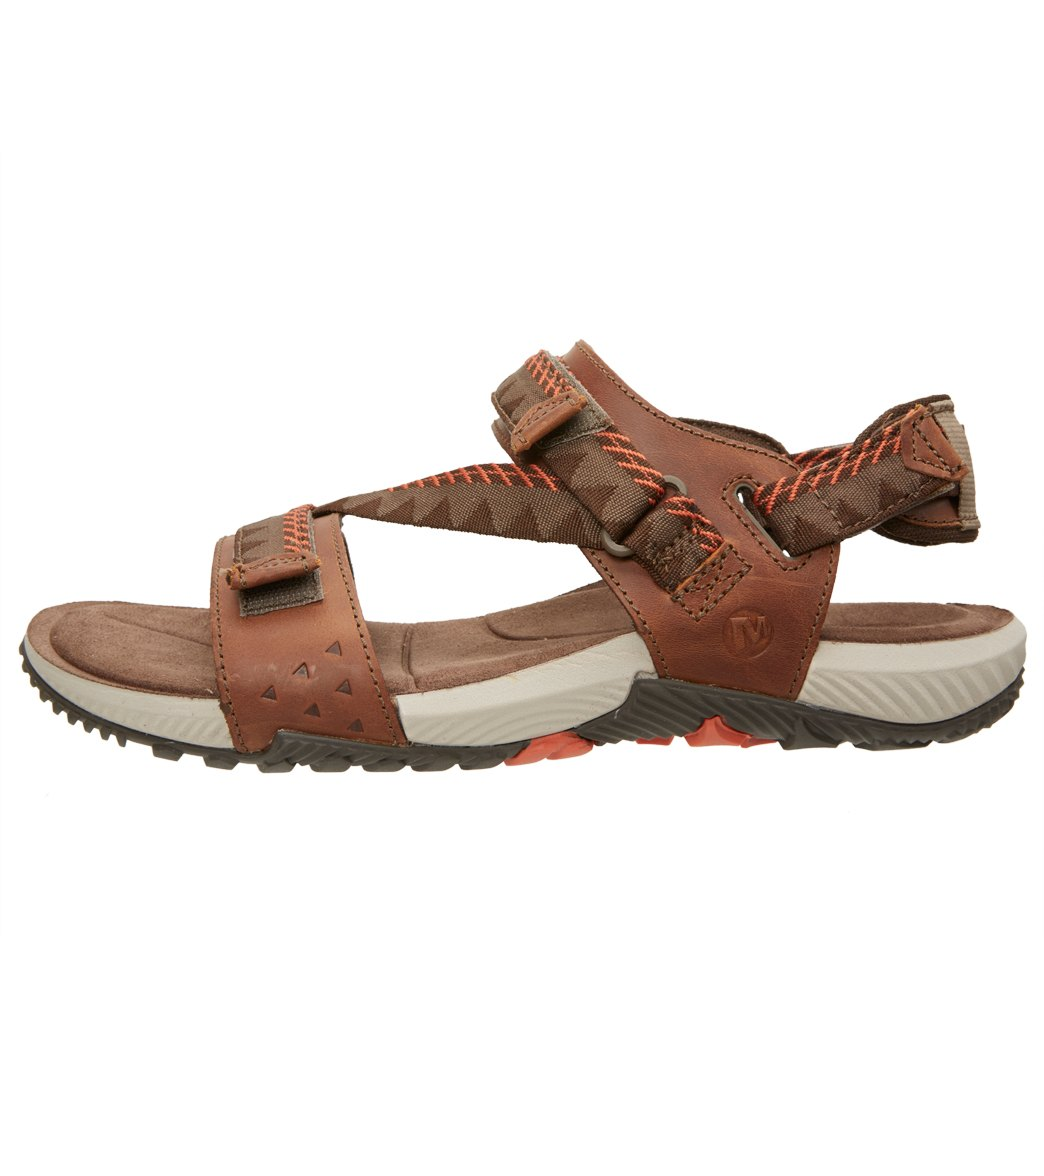 15c1e5ce15ed Merrell Men s Terrant Convertible Sandal at SwimOutlet.com - Free ...